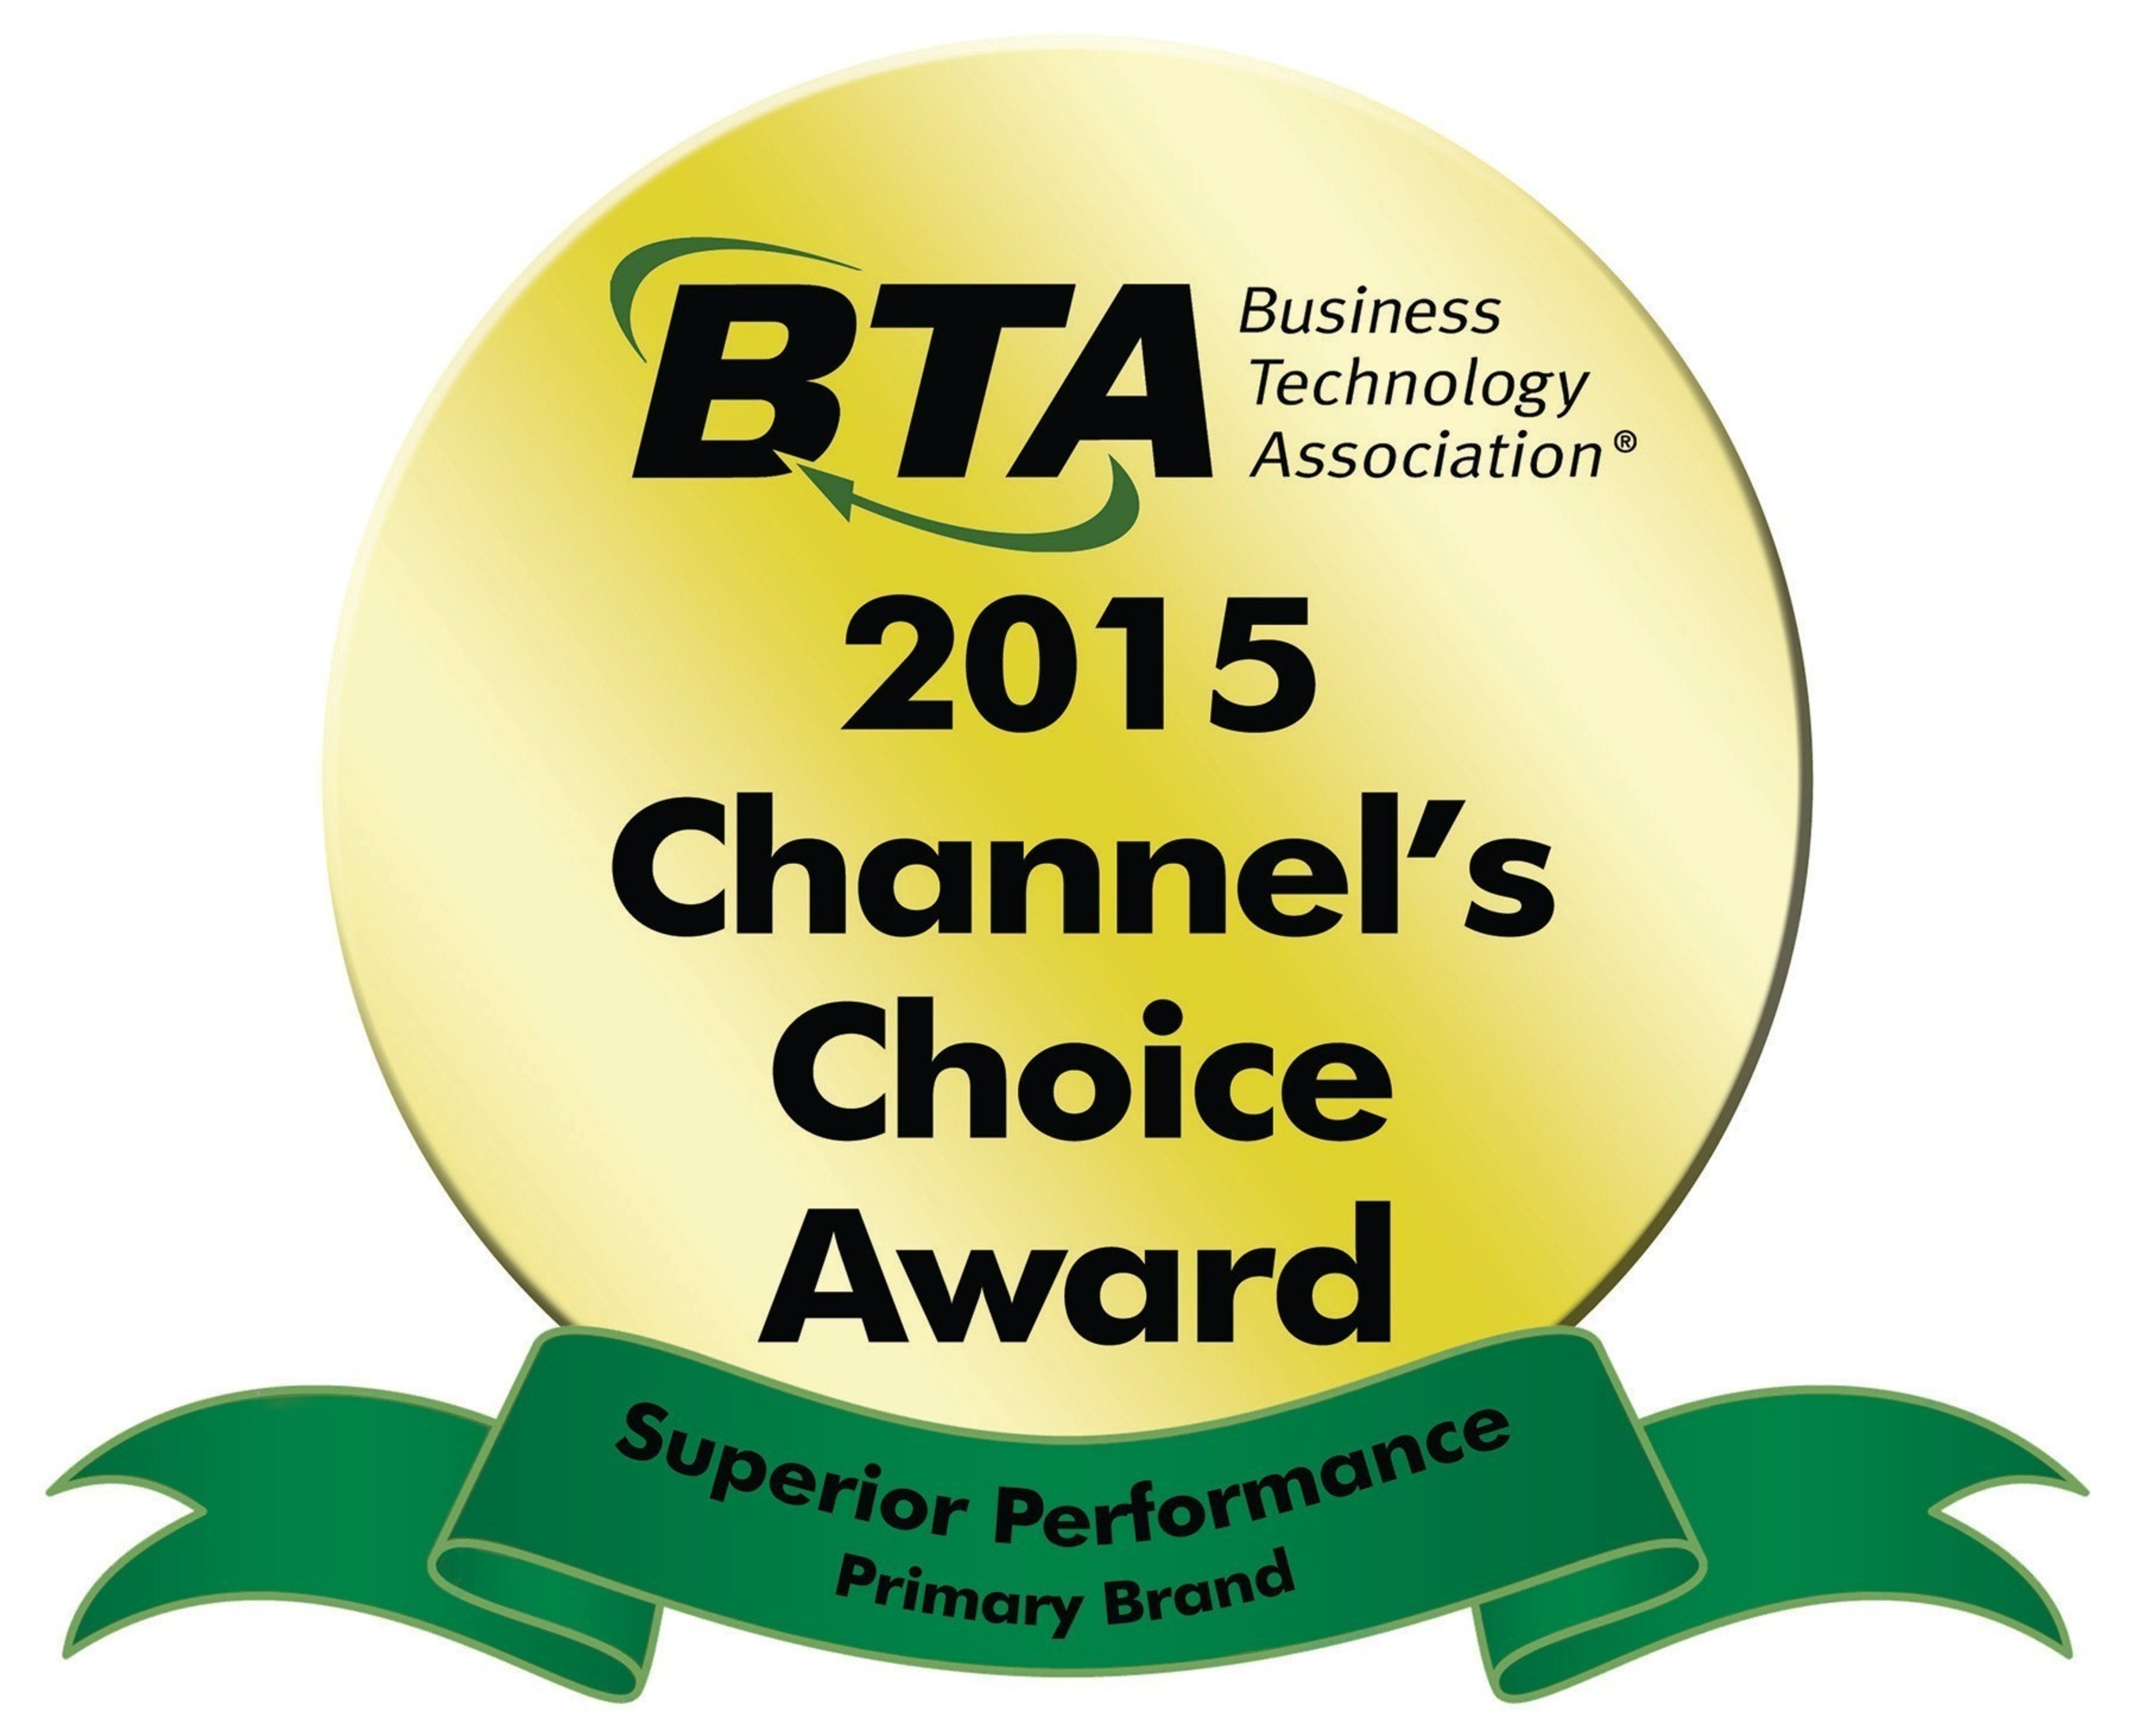 Sharp Wins Business Technology Association's Top Award For The Channel's Choice Of Primary Vendor